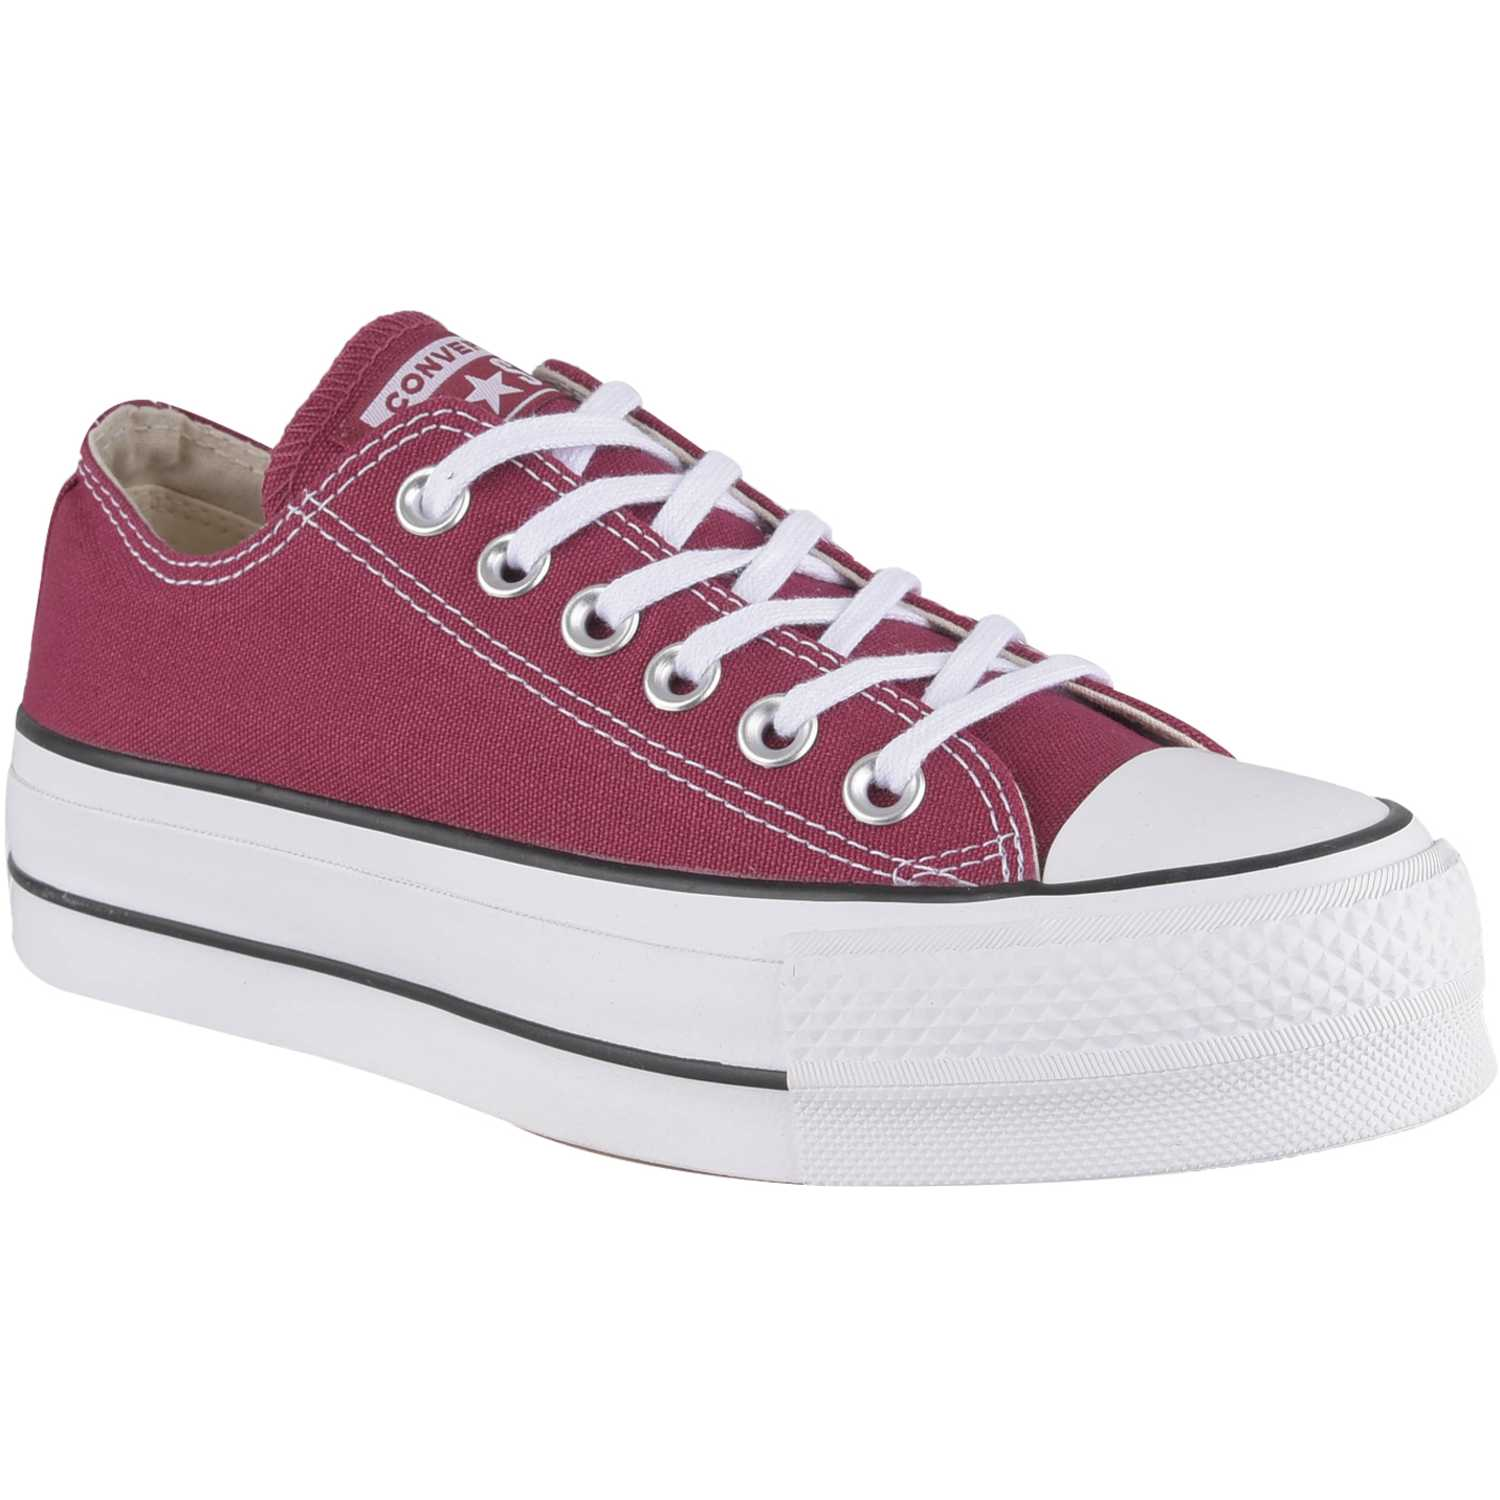 7b8636bdbff Zapatilla de Jovencita Converse Guinda chuck taylor all star lift seasonal  ox